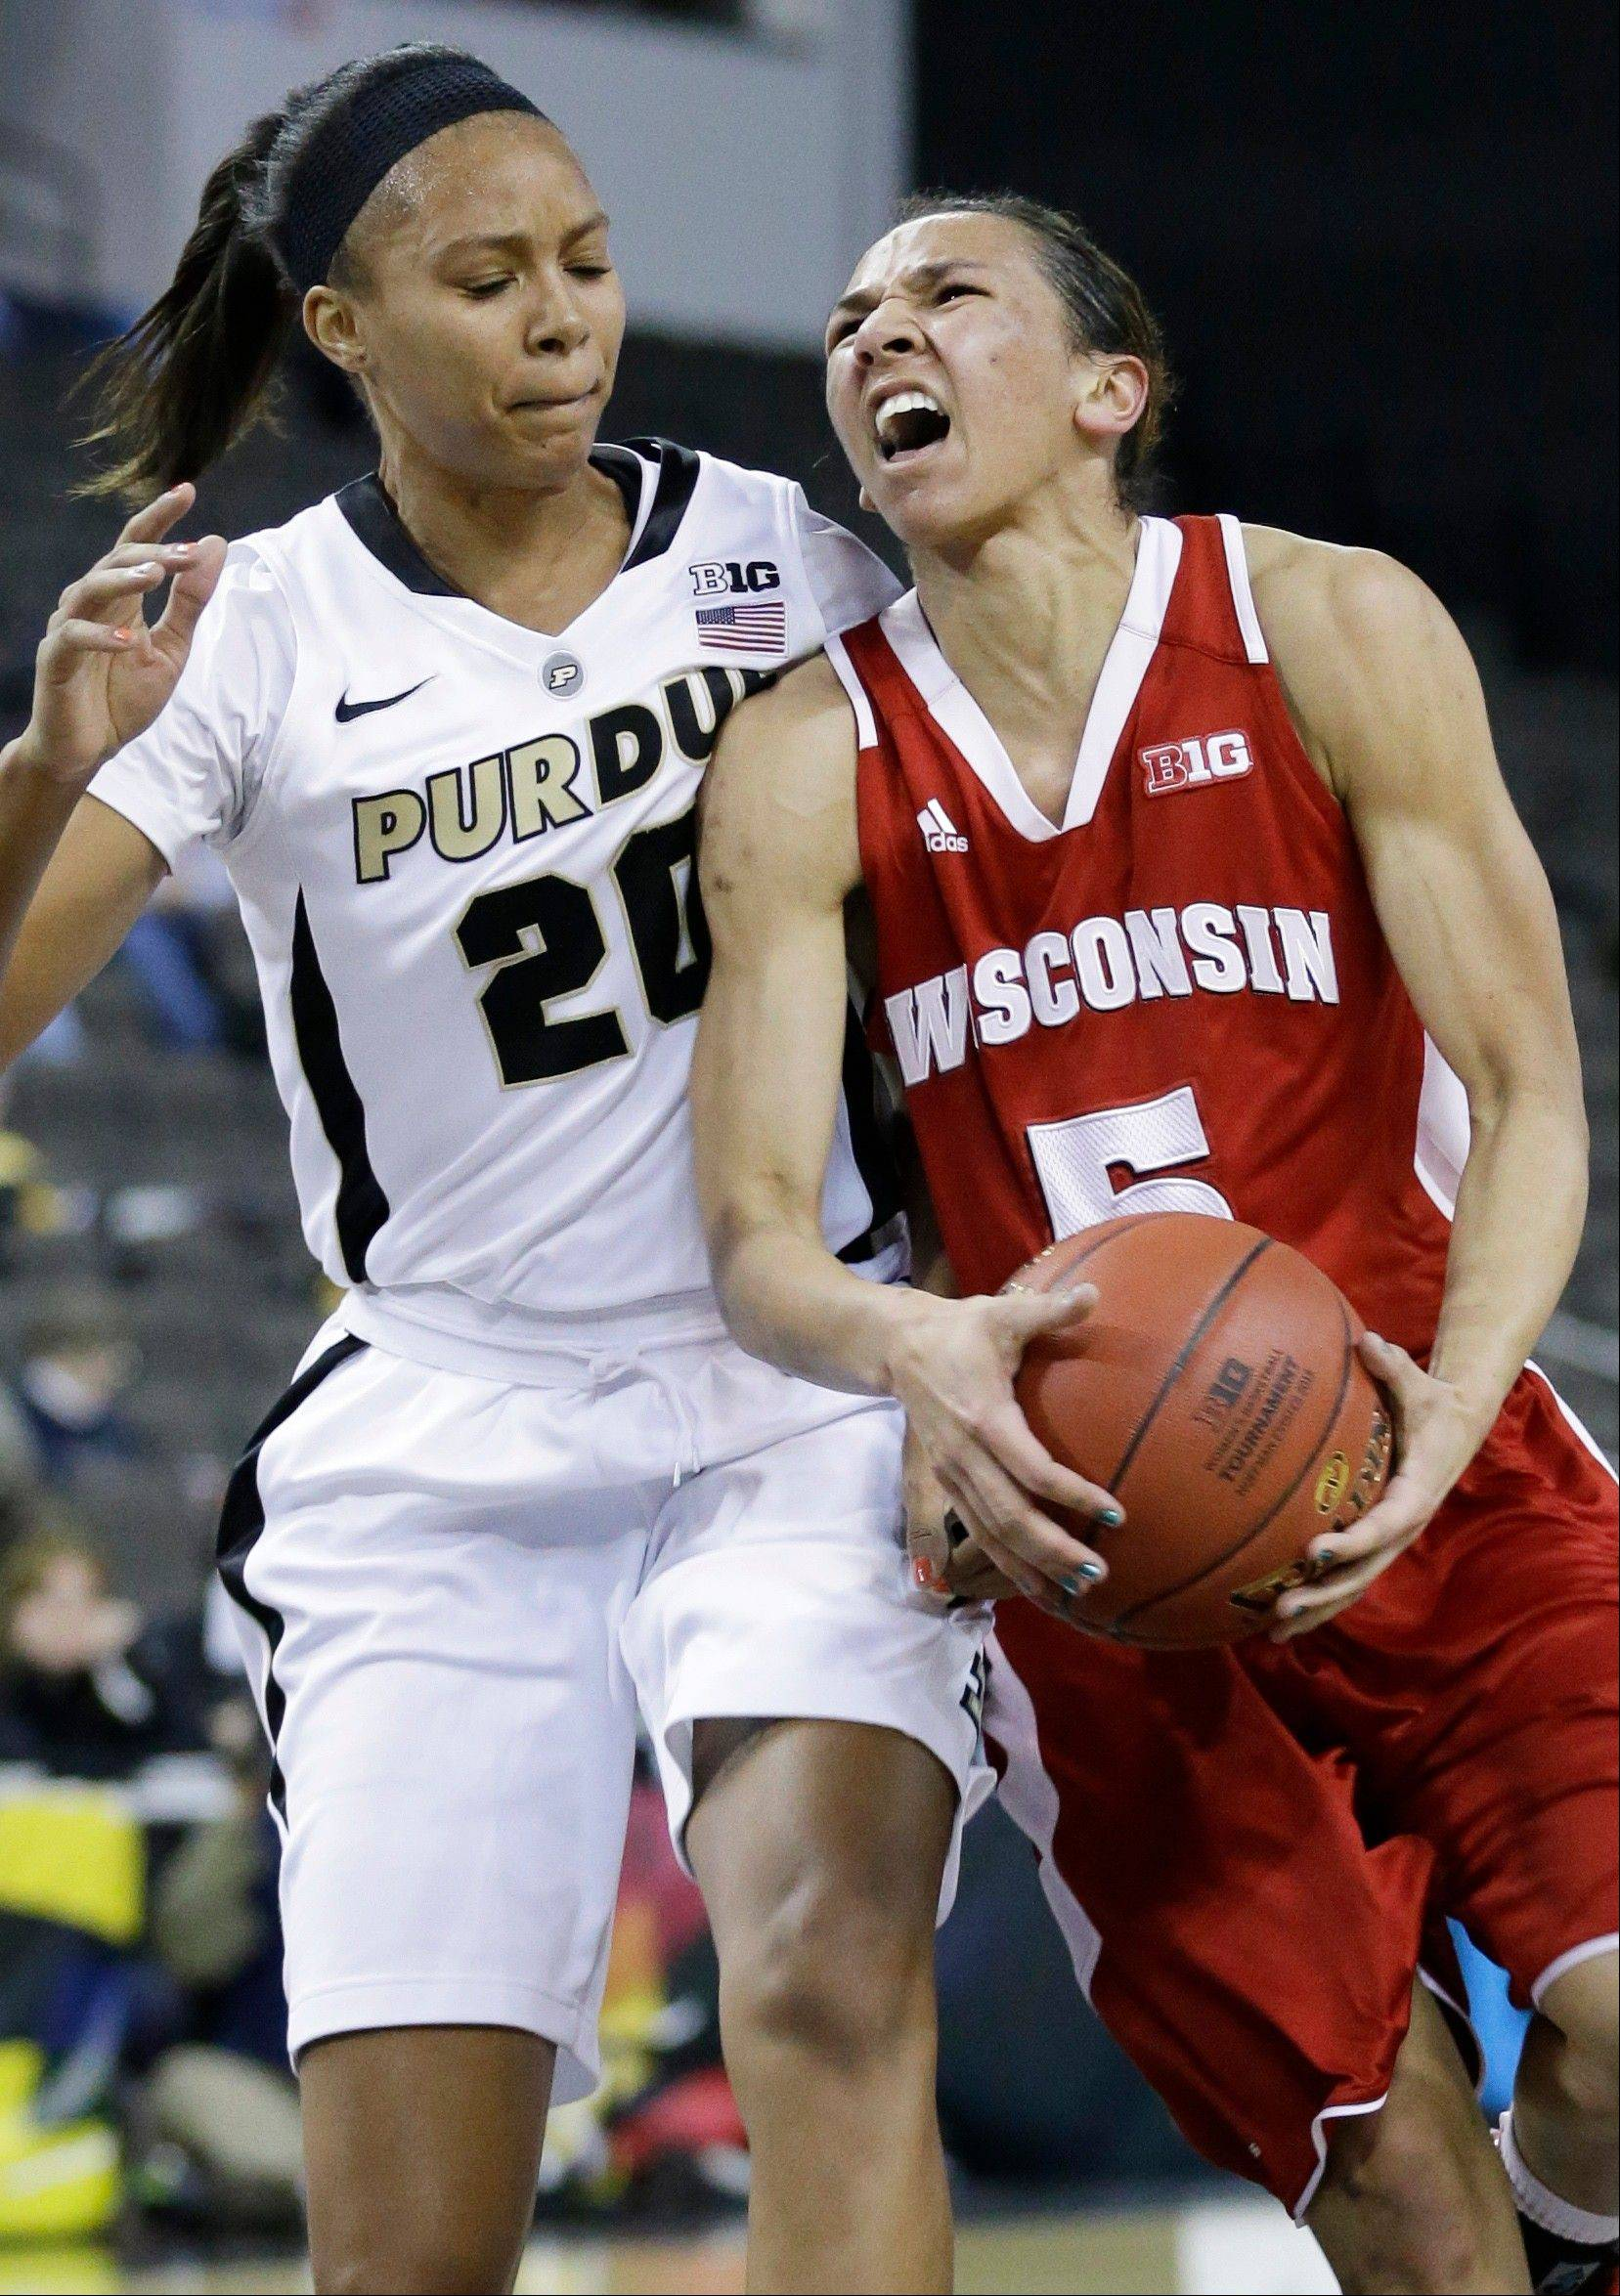 Wisconsin guard Morgan Paige, right, drives to the basket against Purdue guard Dee Dee Williams during the first half of an NCAA college basketball game in the Big Ten Conference tournament in Hoffman Estates, Ill., on Friday, March 8, 2013. (AP Photo/Nam Y. Huh)